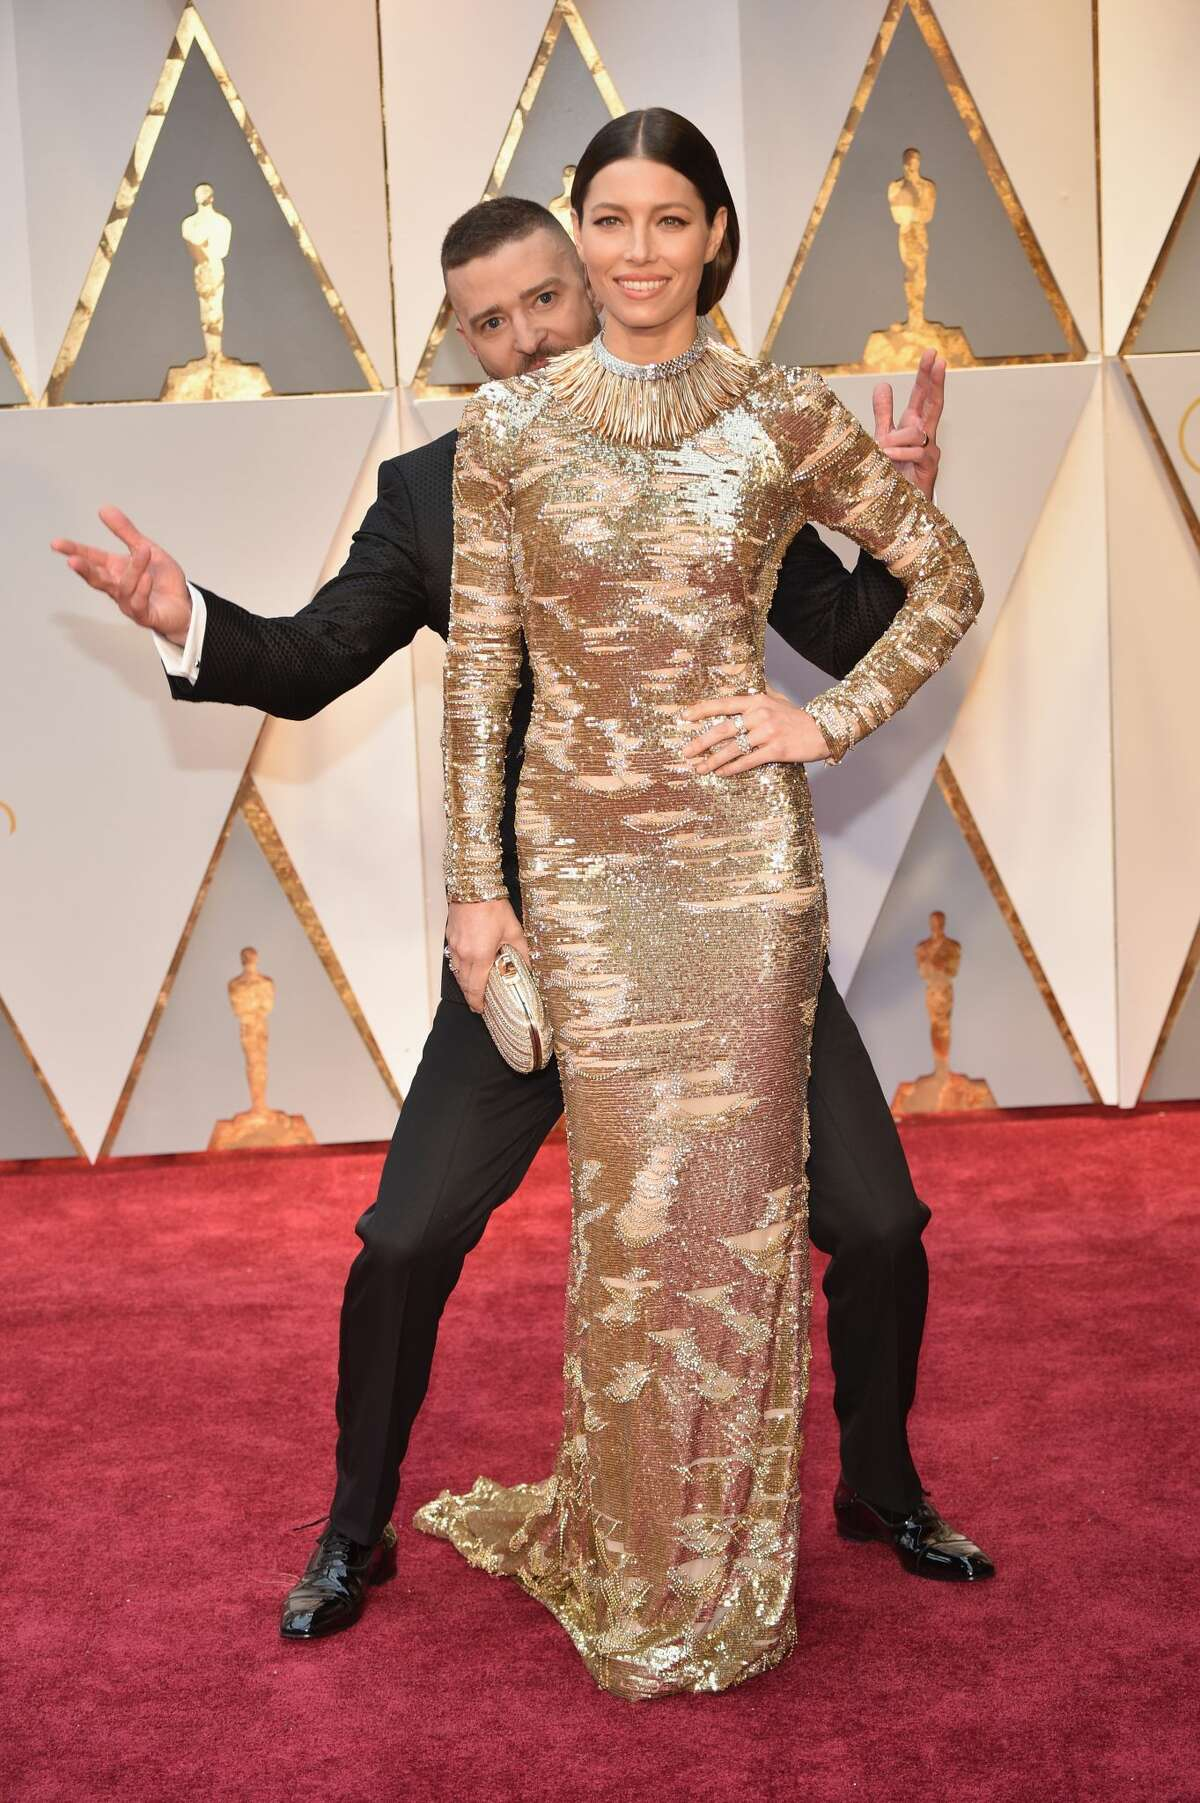 Singer Justin Timberlake and actor Jessica Biel attend the 89th Annual Academy Awards on February 26, 2017. Keep clicking to see the cutest couples and duos at the 89th Academy Awards as well as some throwback red carpet moments.